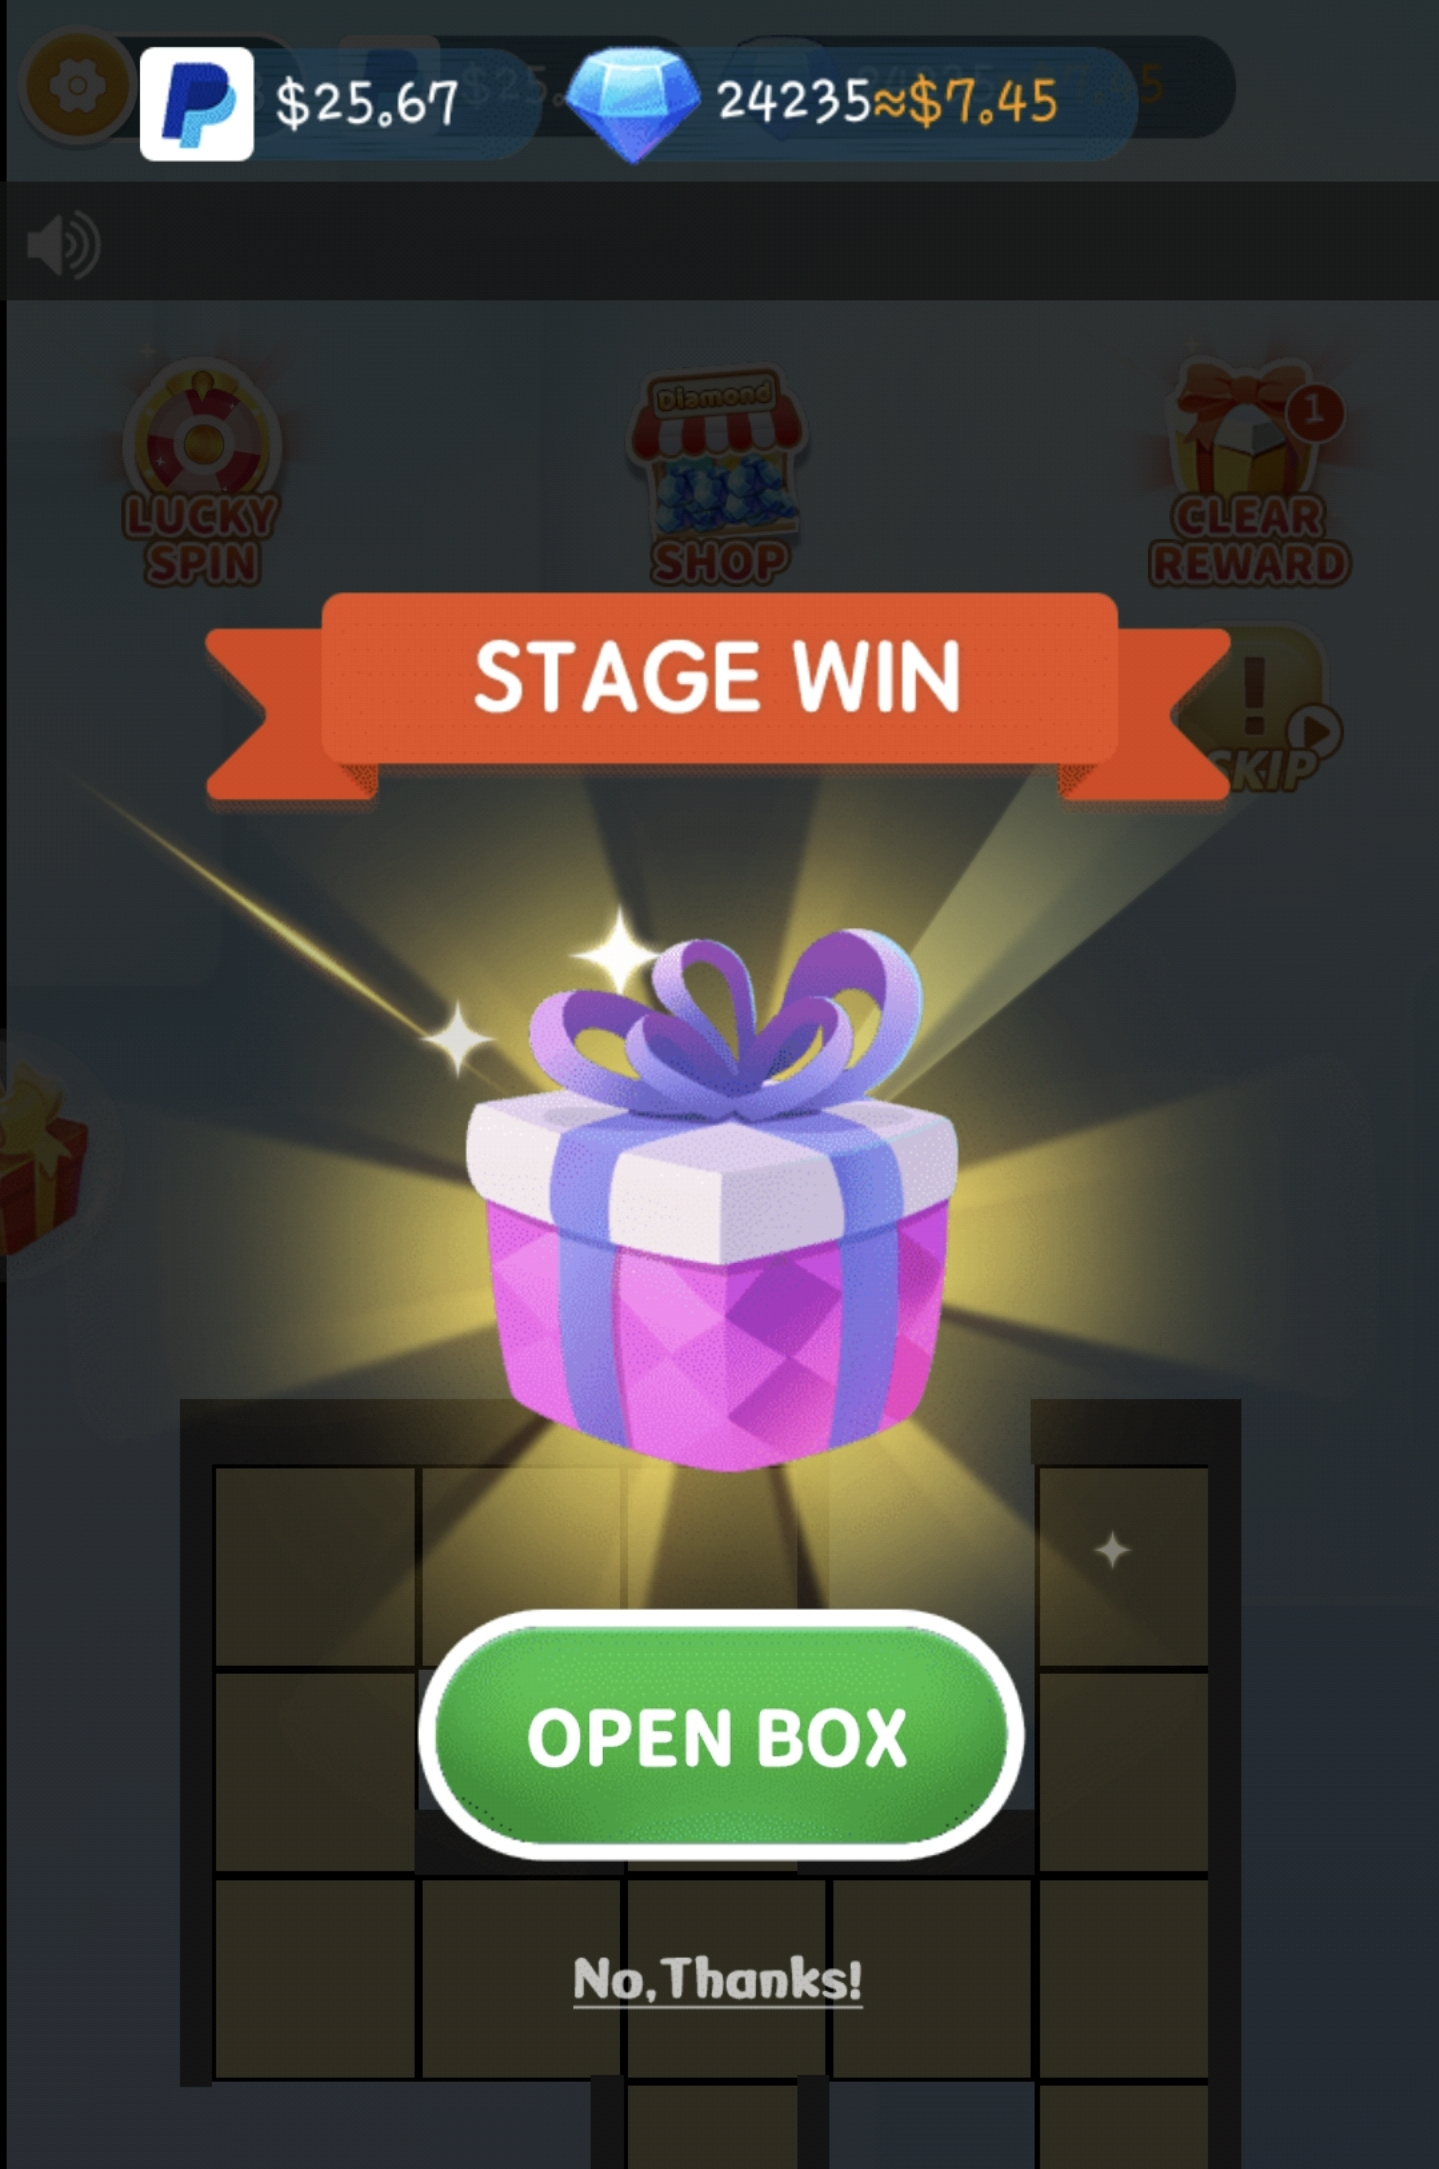 Open box after stage win